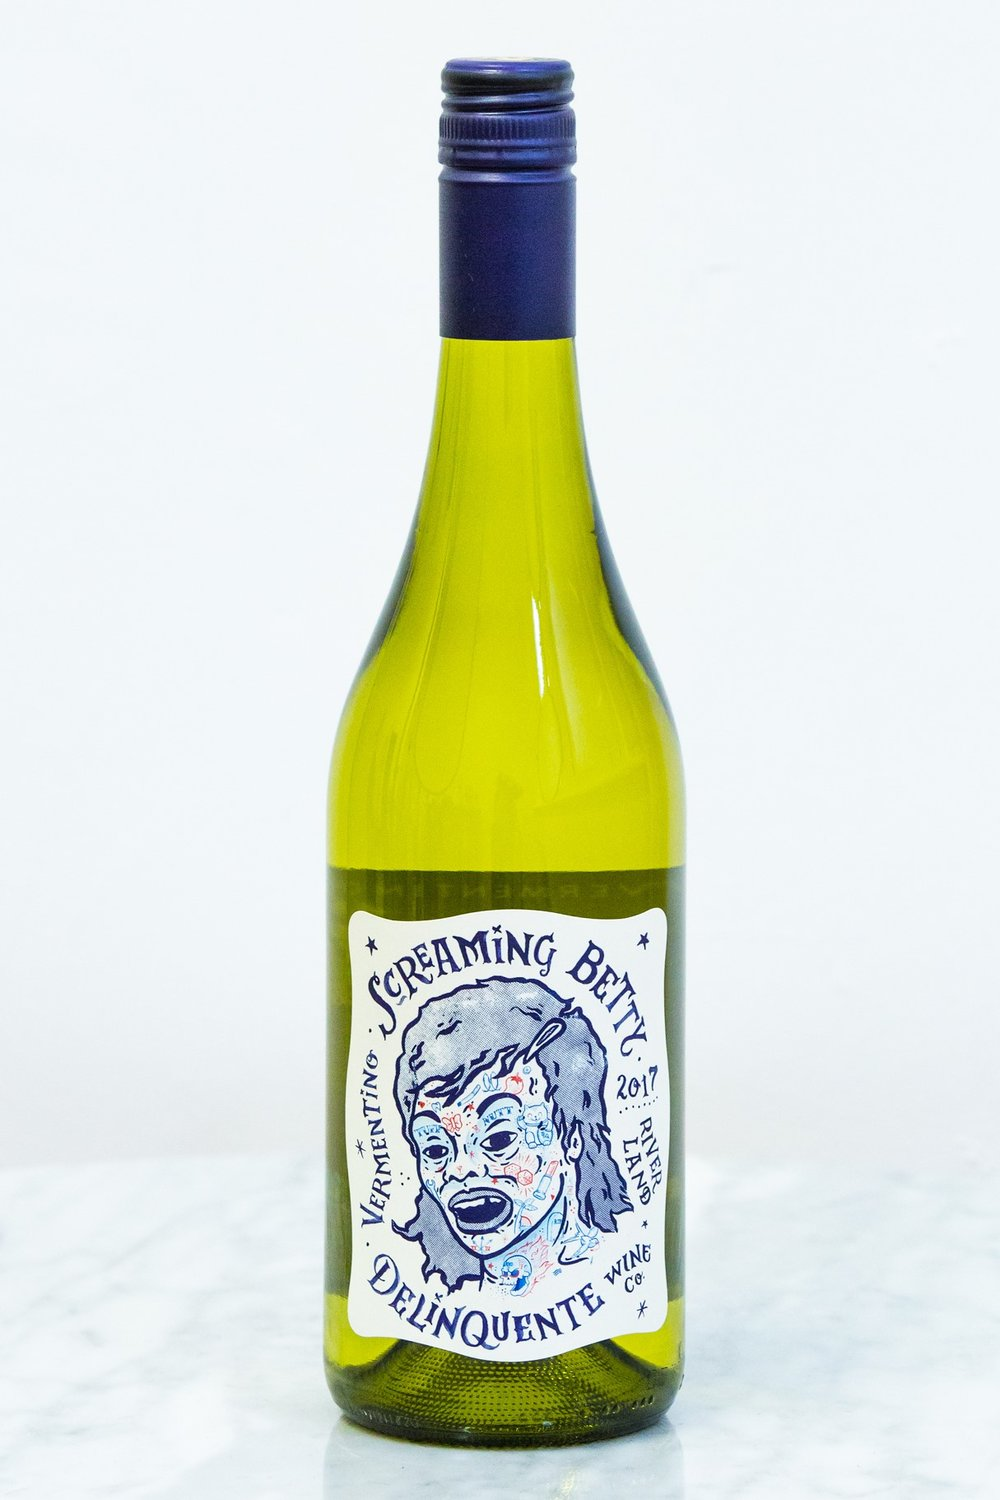 VERMENTINO is far more sassy than a savvy b. Tracing their origins to the island of Sardinia in the south of Italy, these gonzo grapes have completely embedded themselves in the warm, dry climate of the Riverland. Blonde tips with a citrus soul, this gang of grapes will leave your palate happy with a clean, crisp and floral lift.